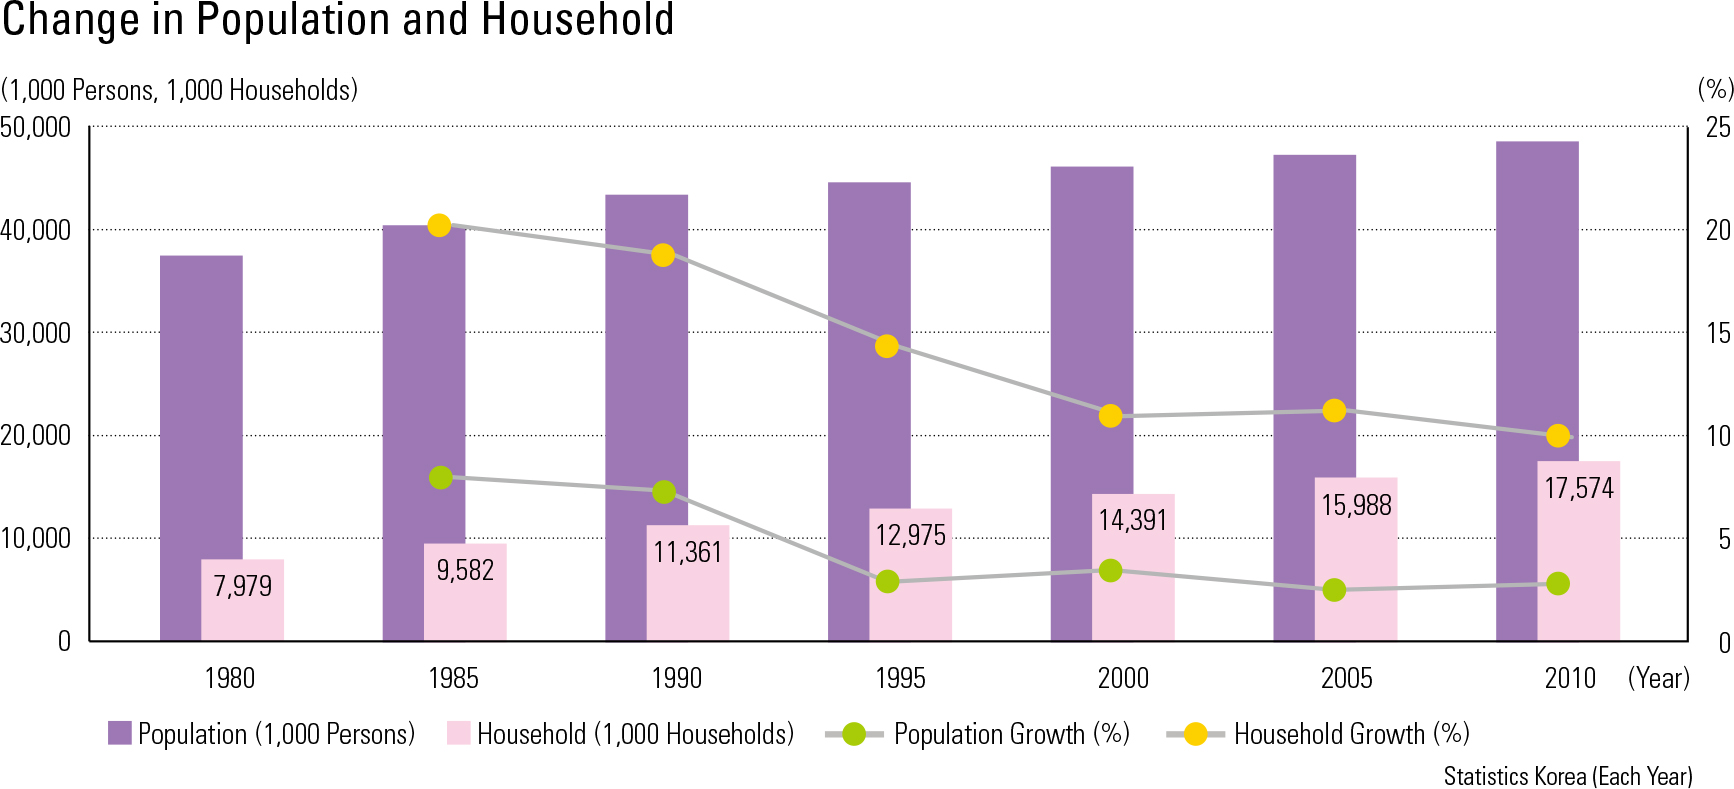 Change in Population and Household